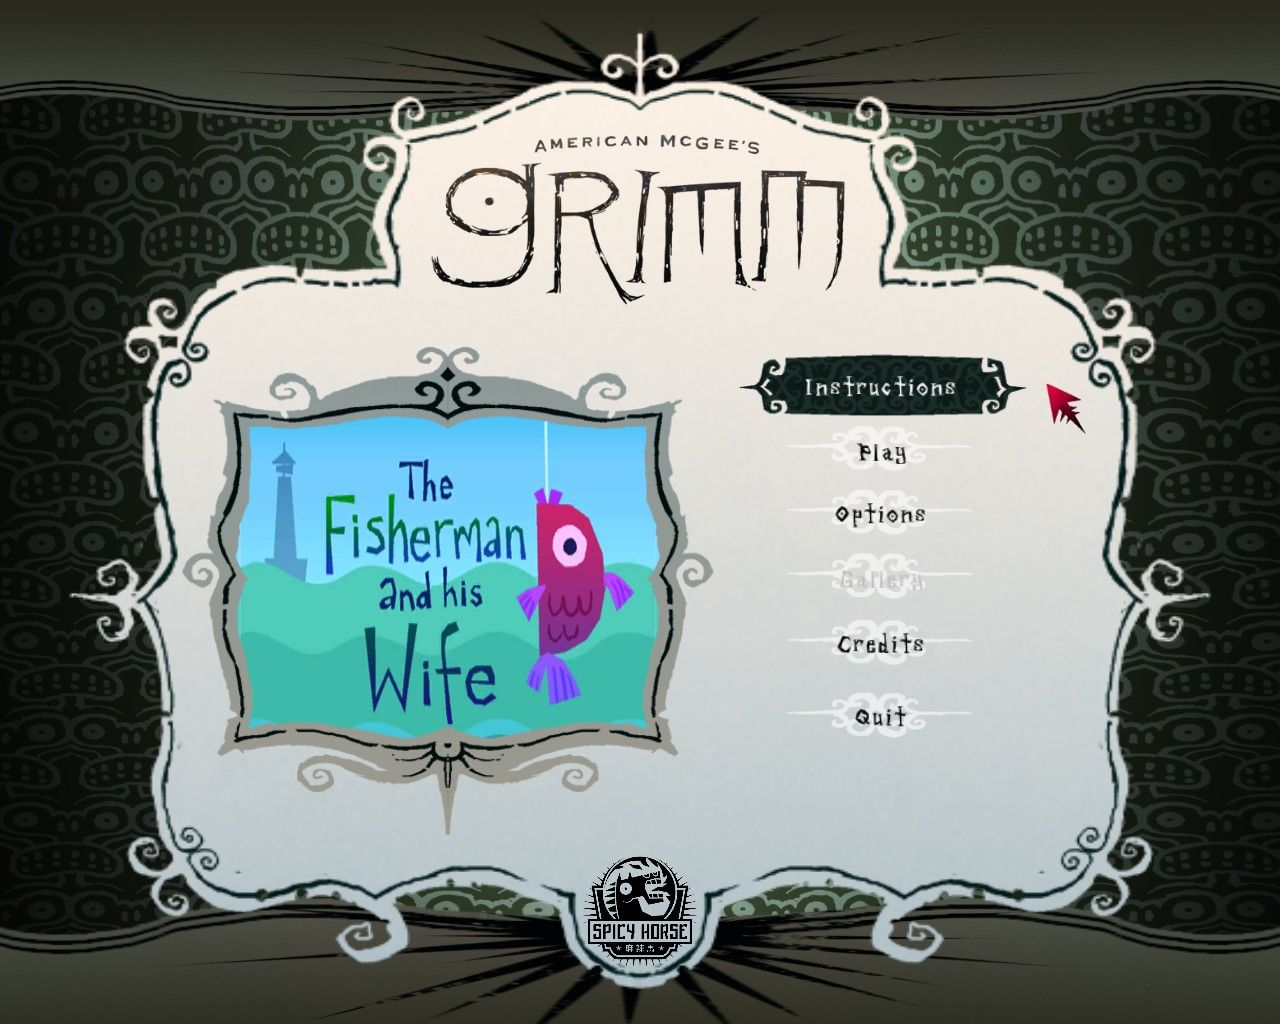 American McGee's Grimm: The Fisherman and His Wife Windows Main menu